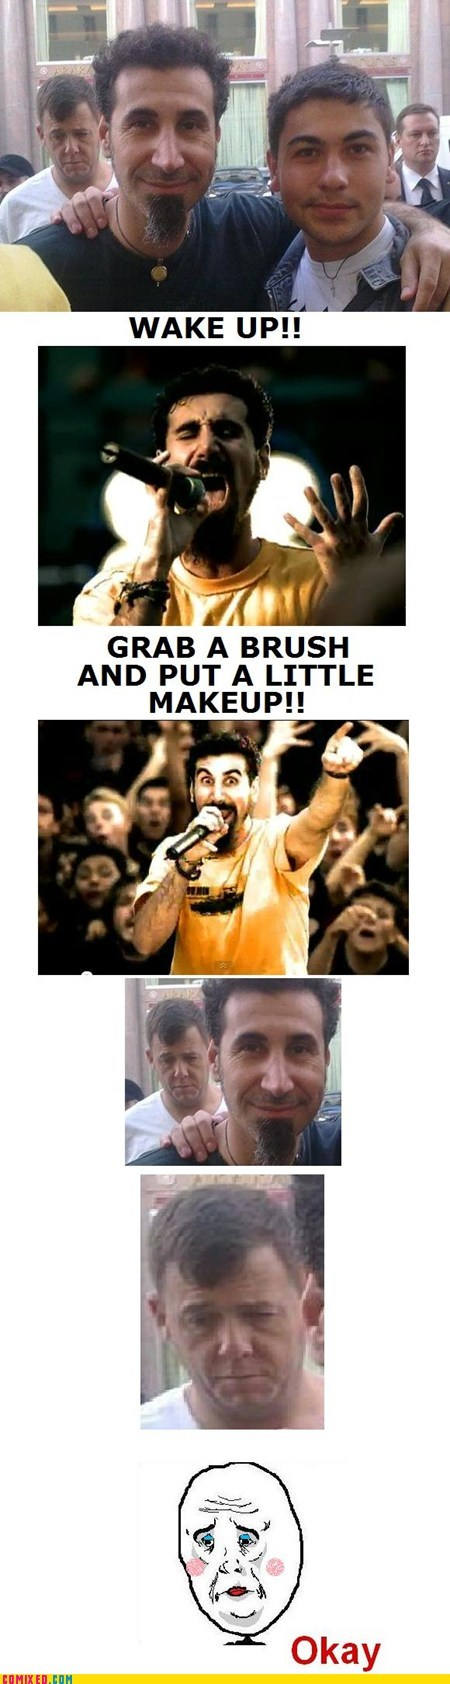 makeup Music okay guy photobomb system of a down wake up - 5437683456